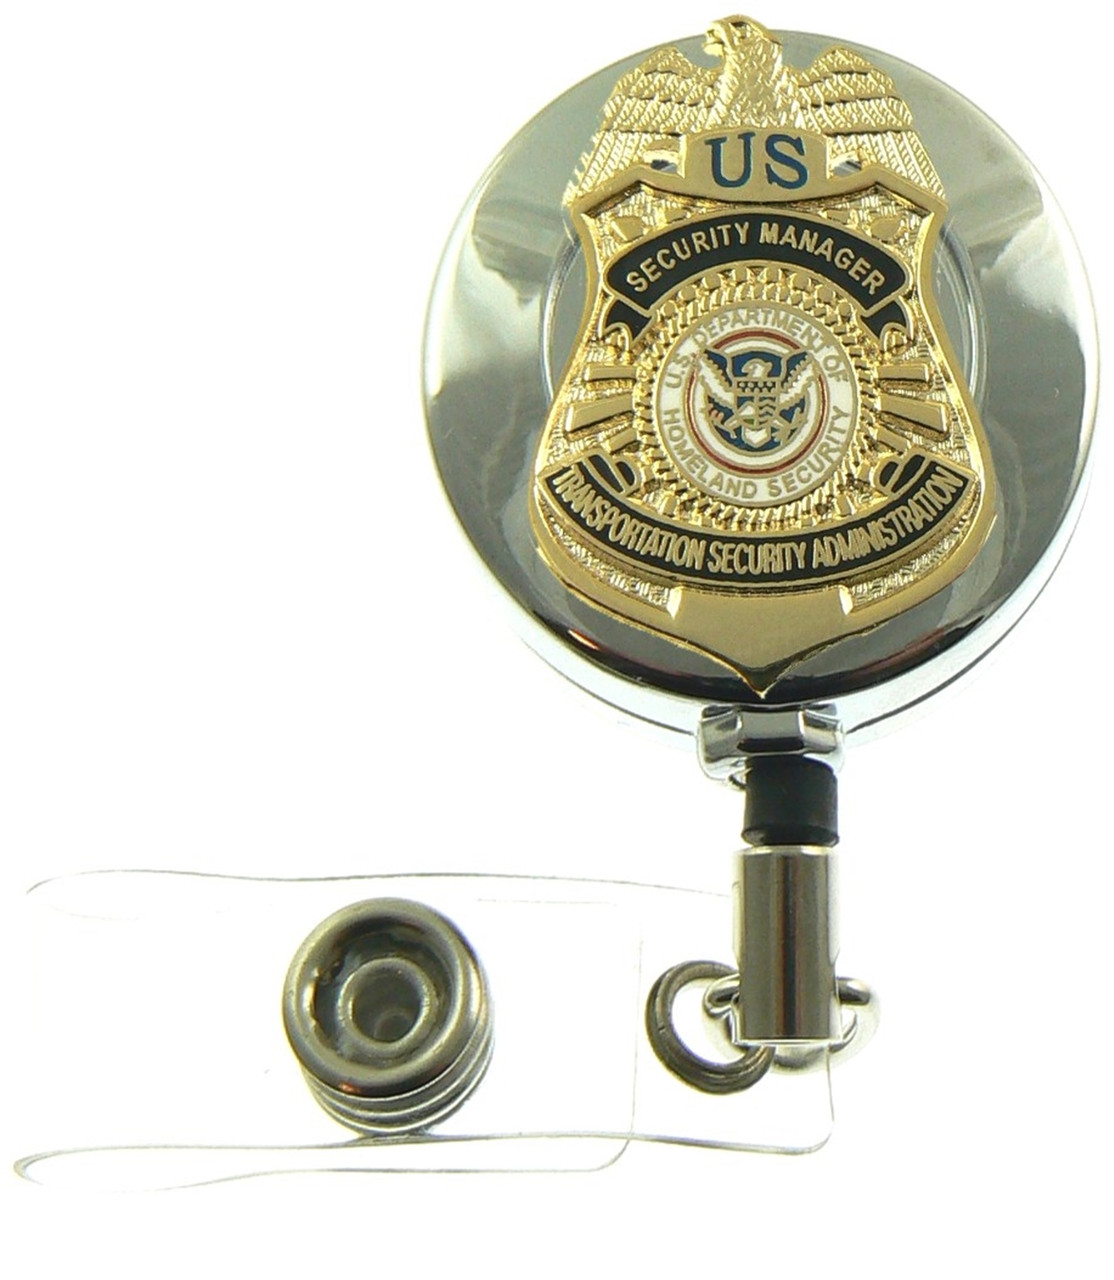 TSA Security Manager Mini Badge Retractable ID Reel Badge Holder